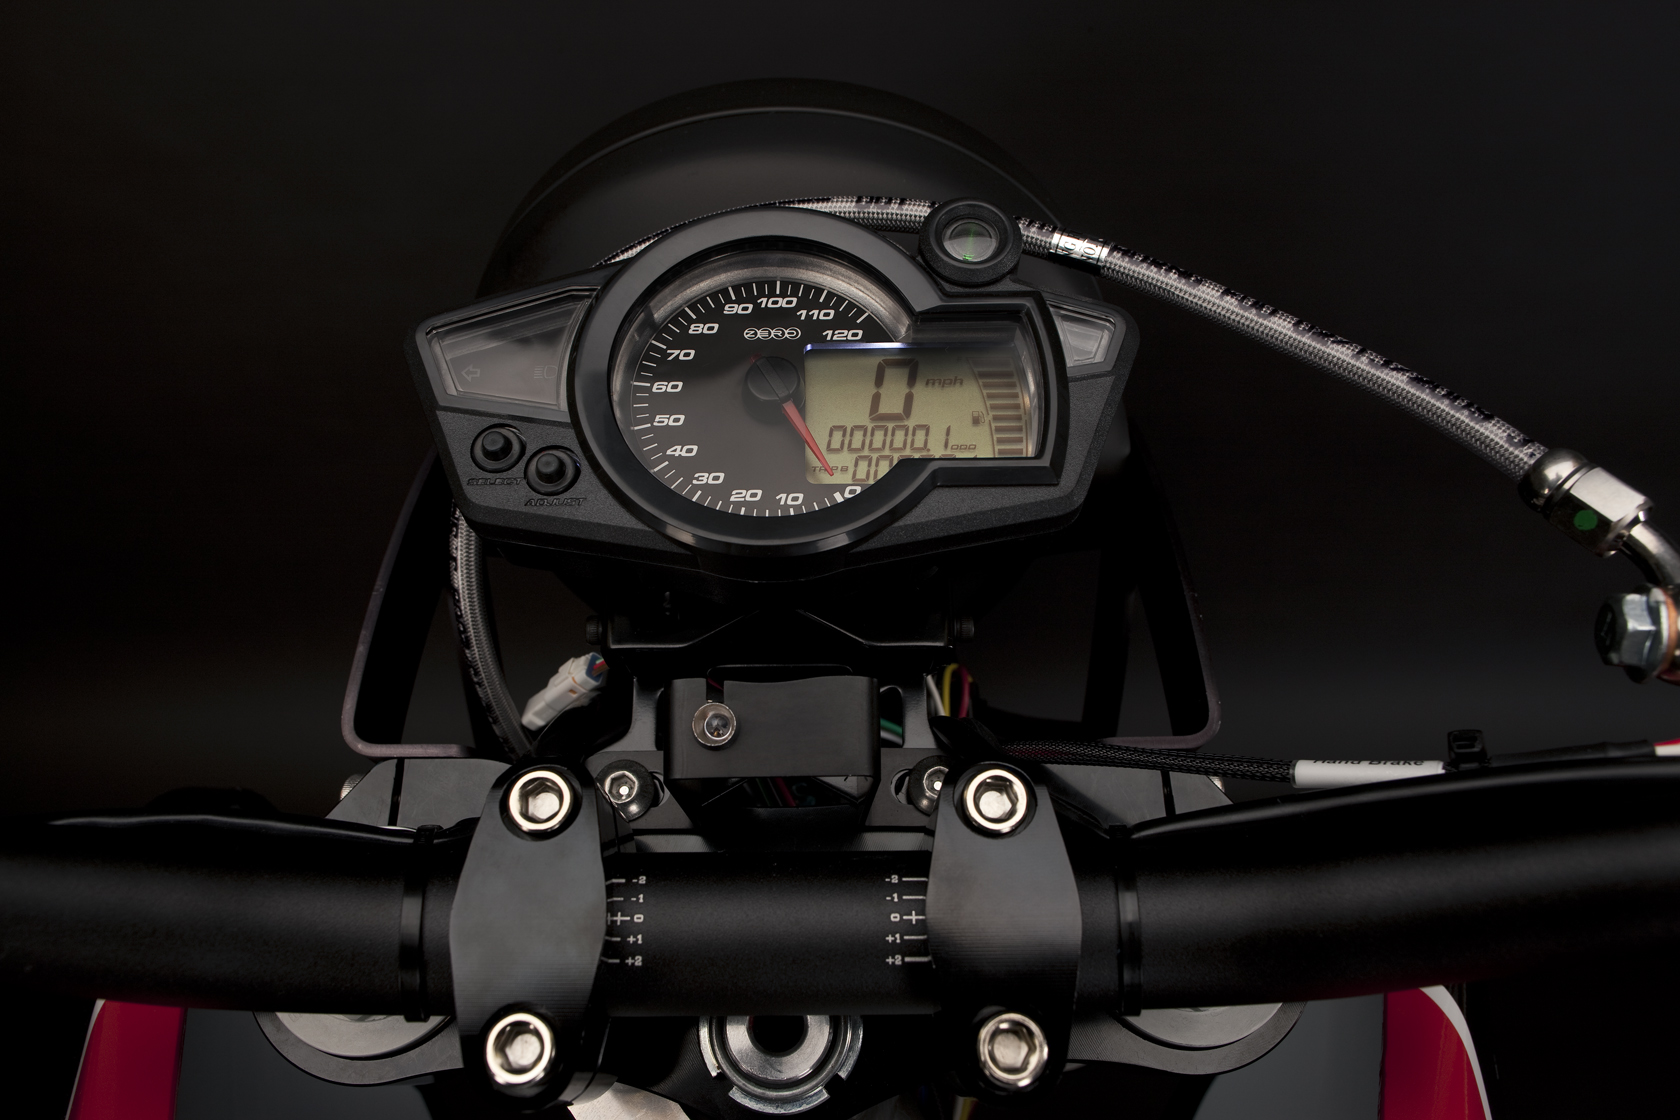 2010 Zero DS Electric Motorcycle: Gauge Cluster